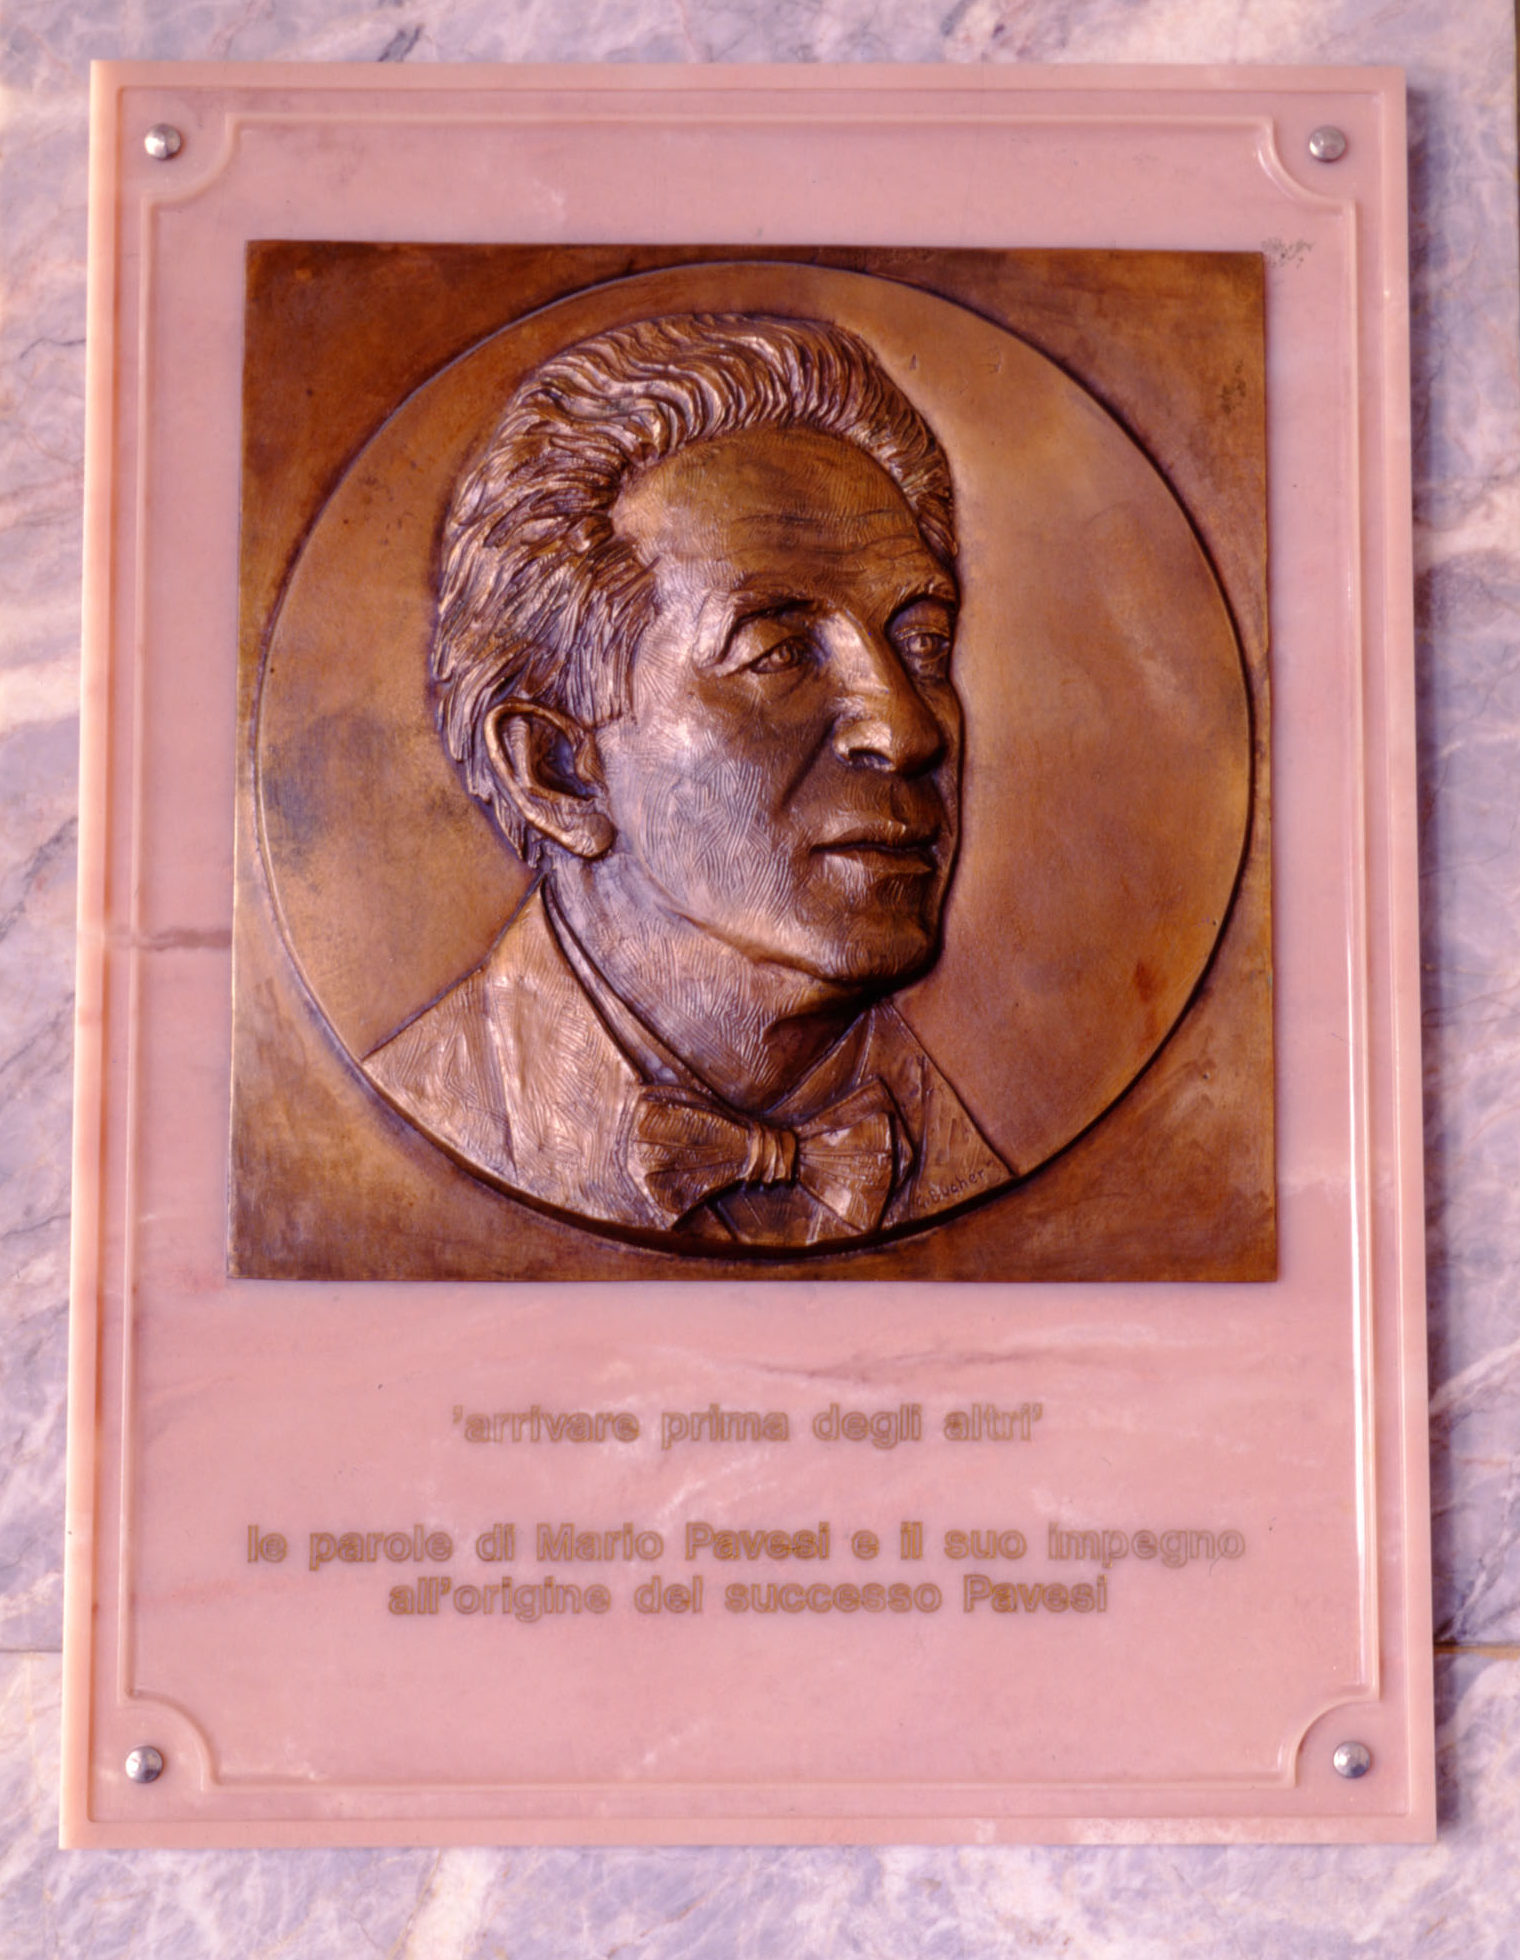 The bronze medal made by the artist Giovanni Bucher, located at Pavesi plant in Novara in 1992